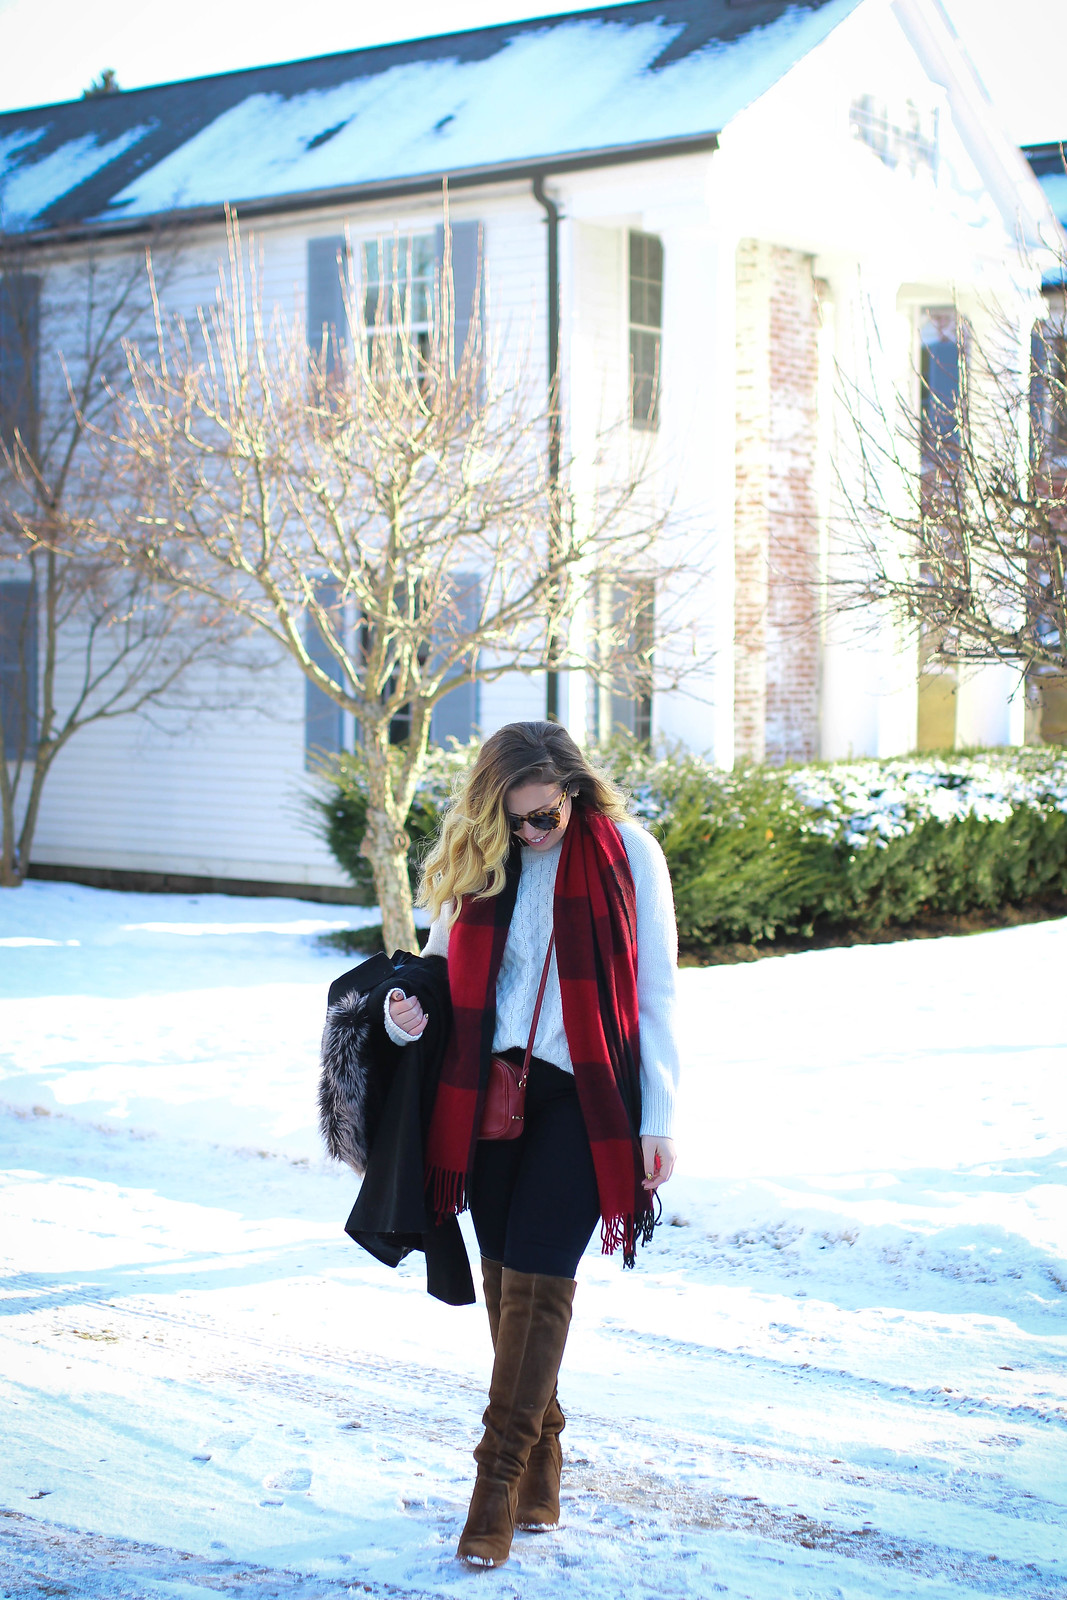 Casual Winter Outfit in Snow. What to Wear in New York in February